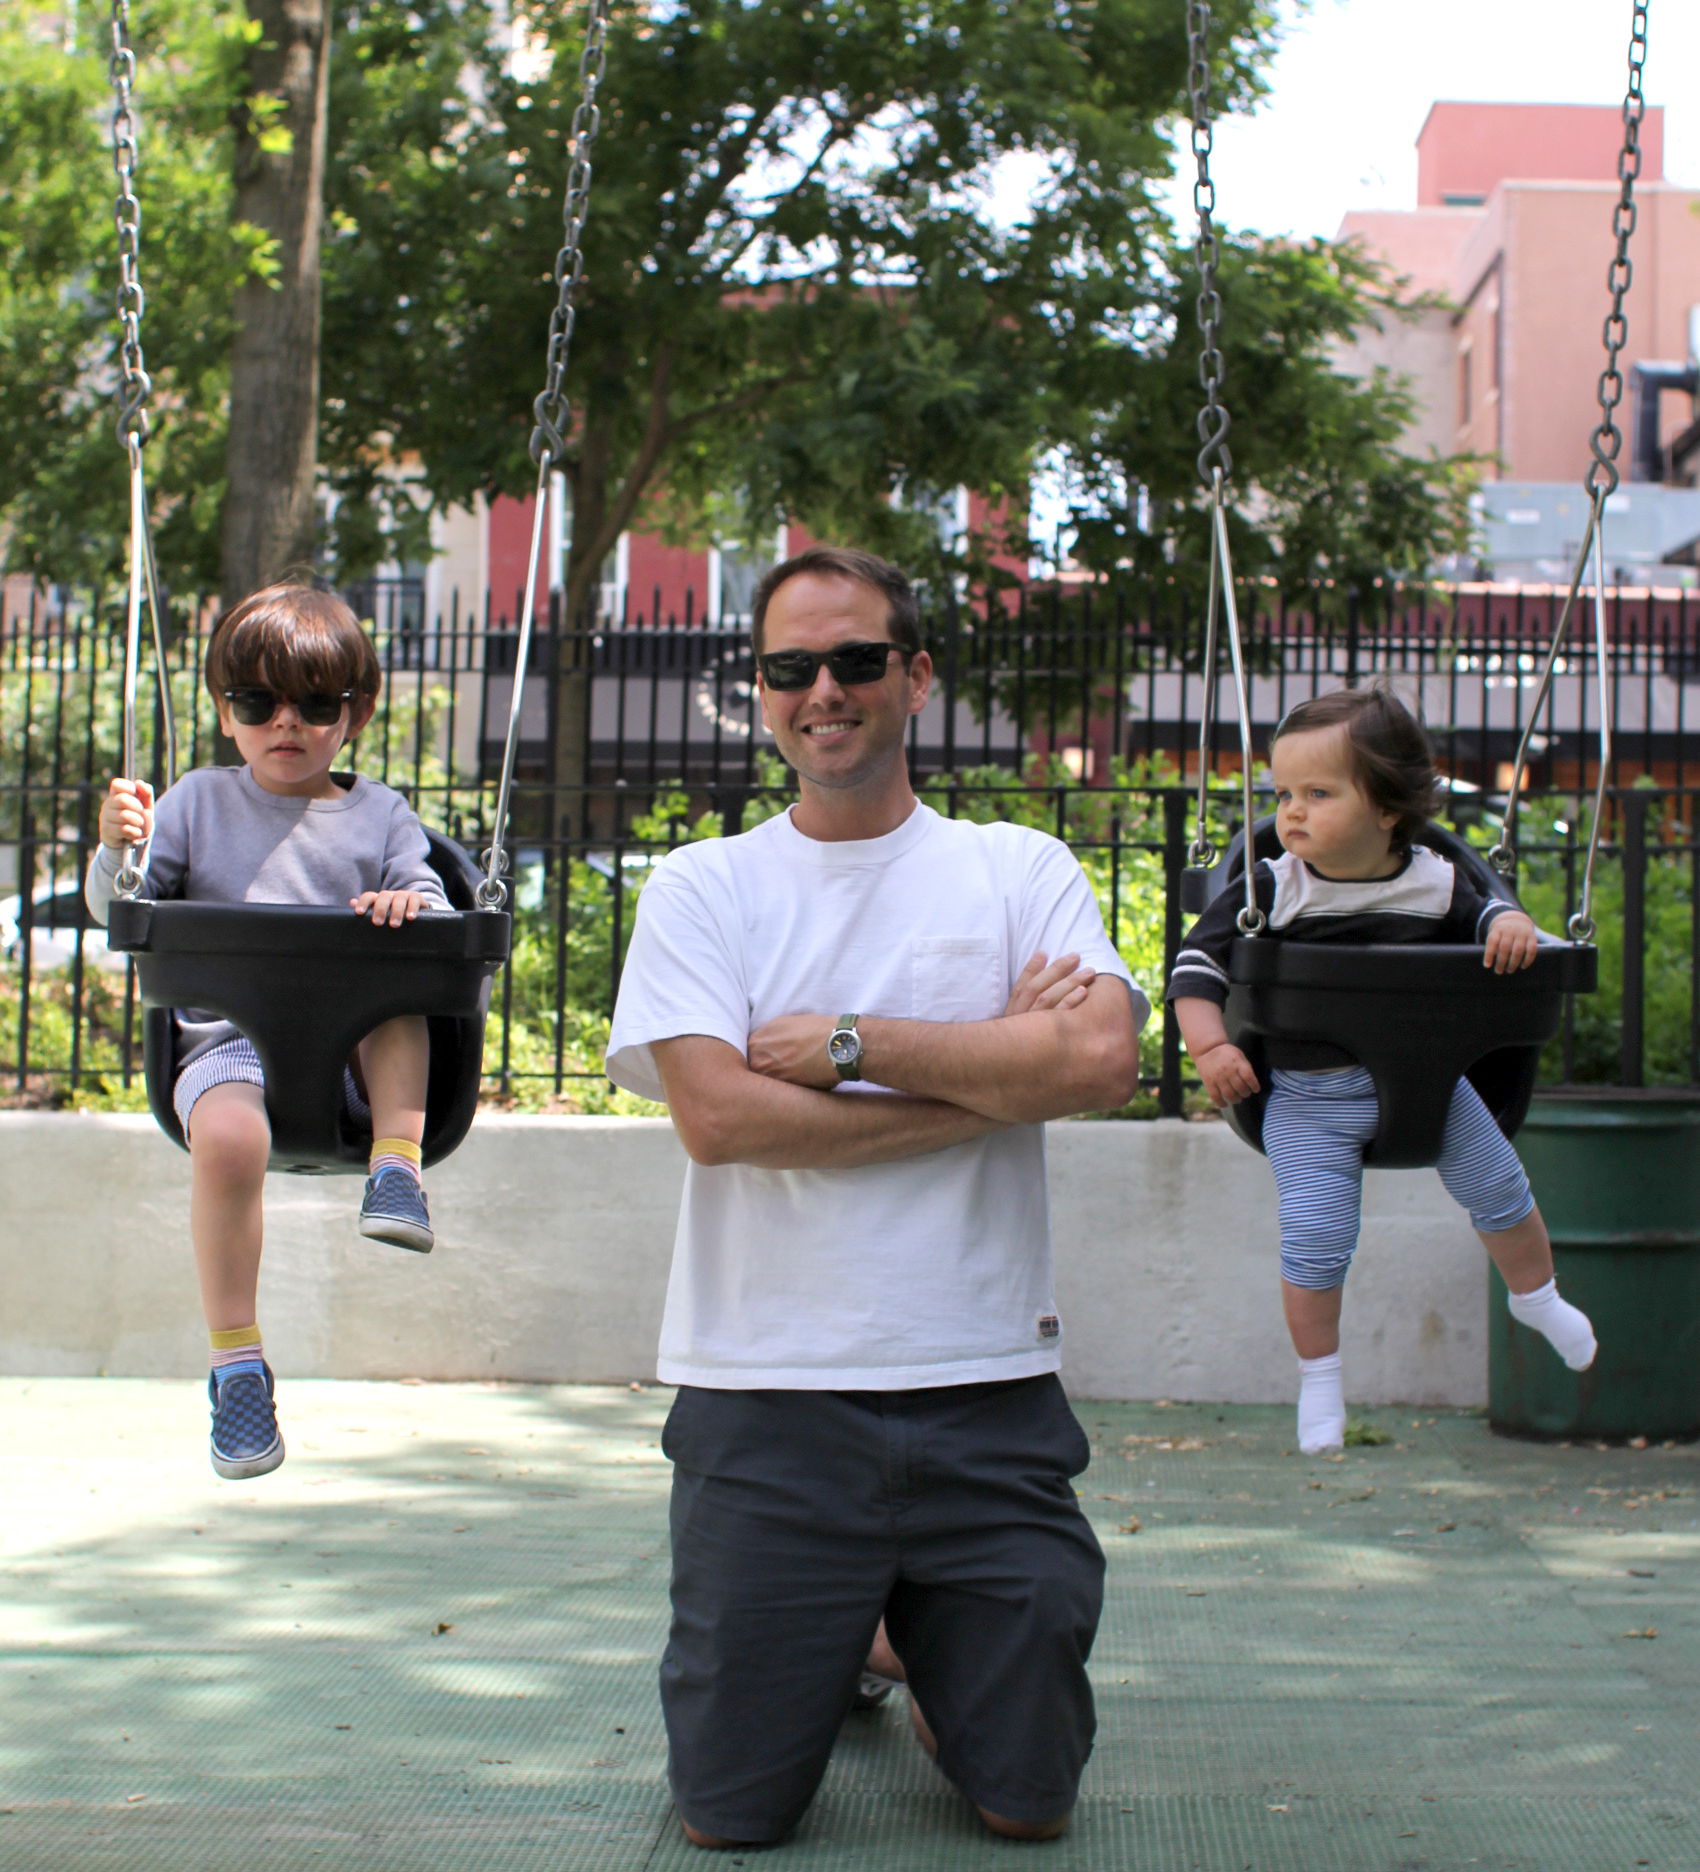 Happy father's day – your third as a father and first as a father of two.